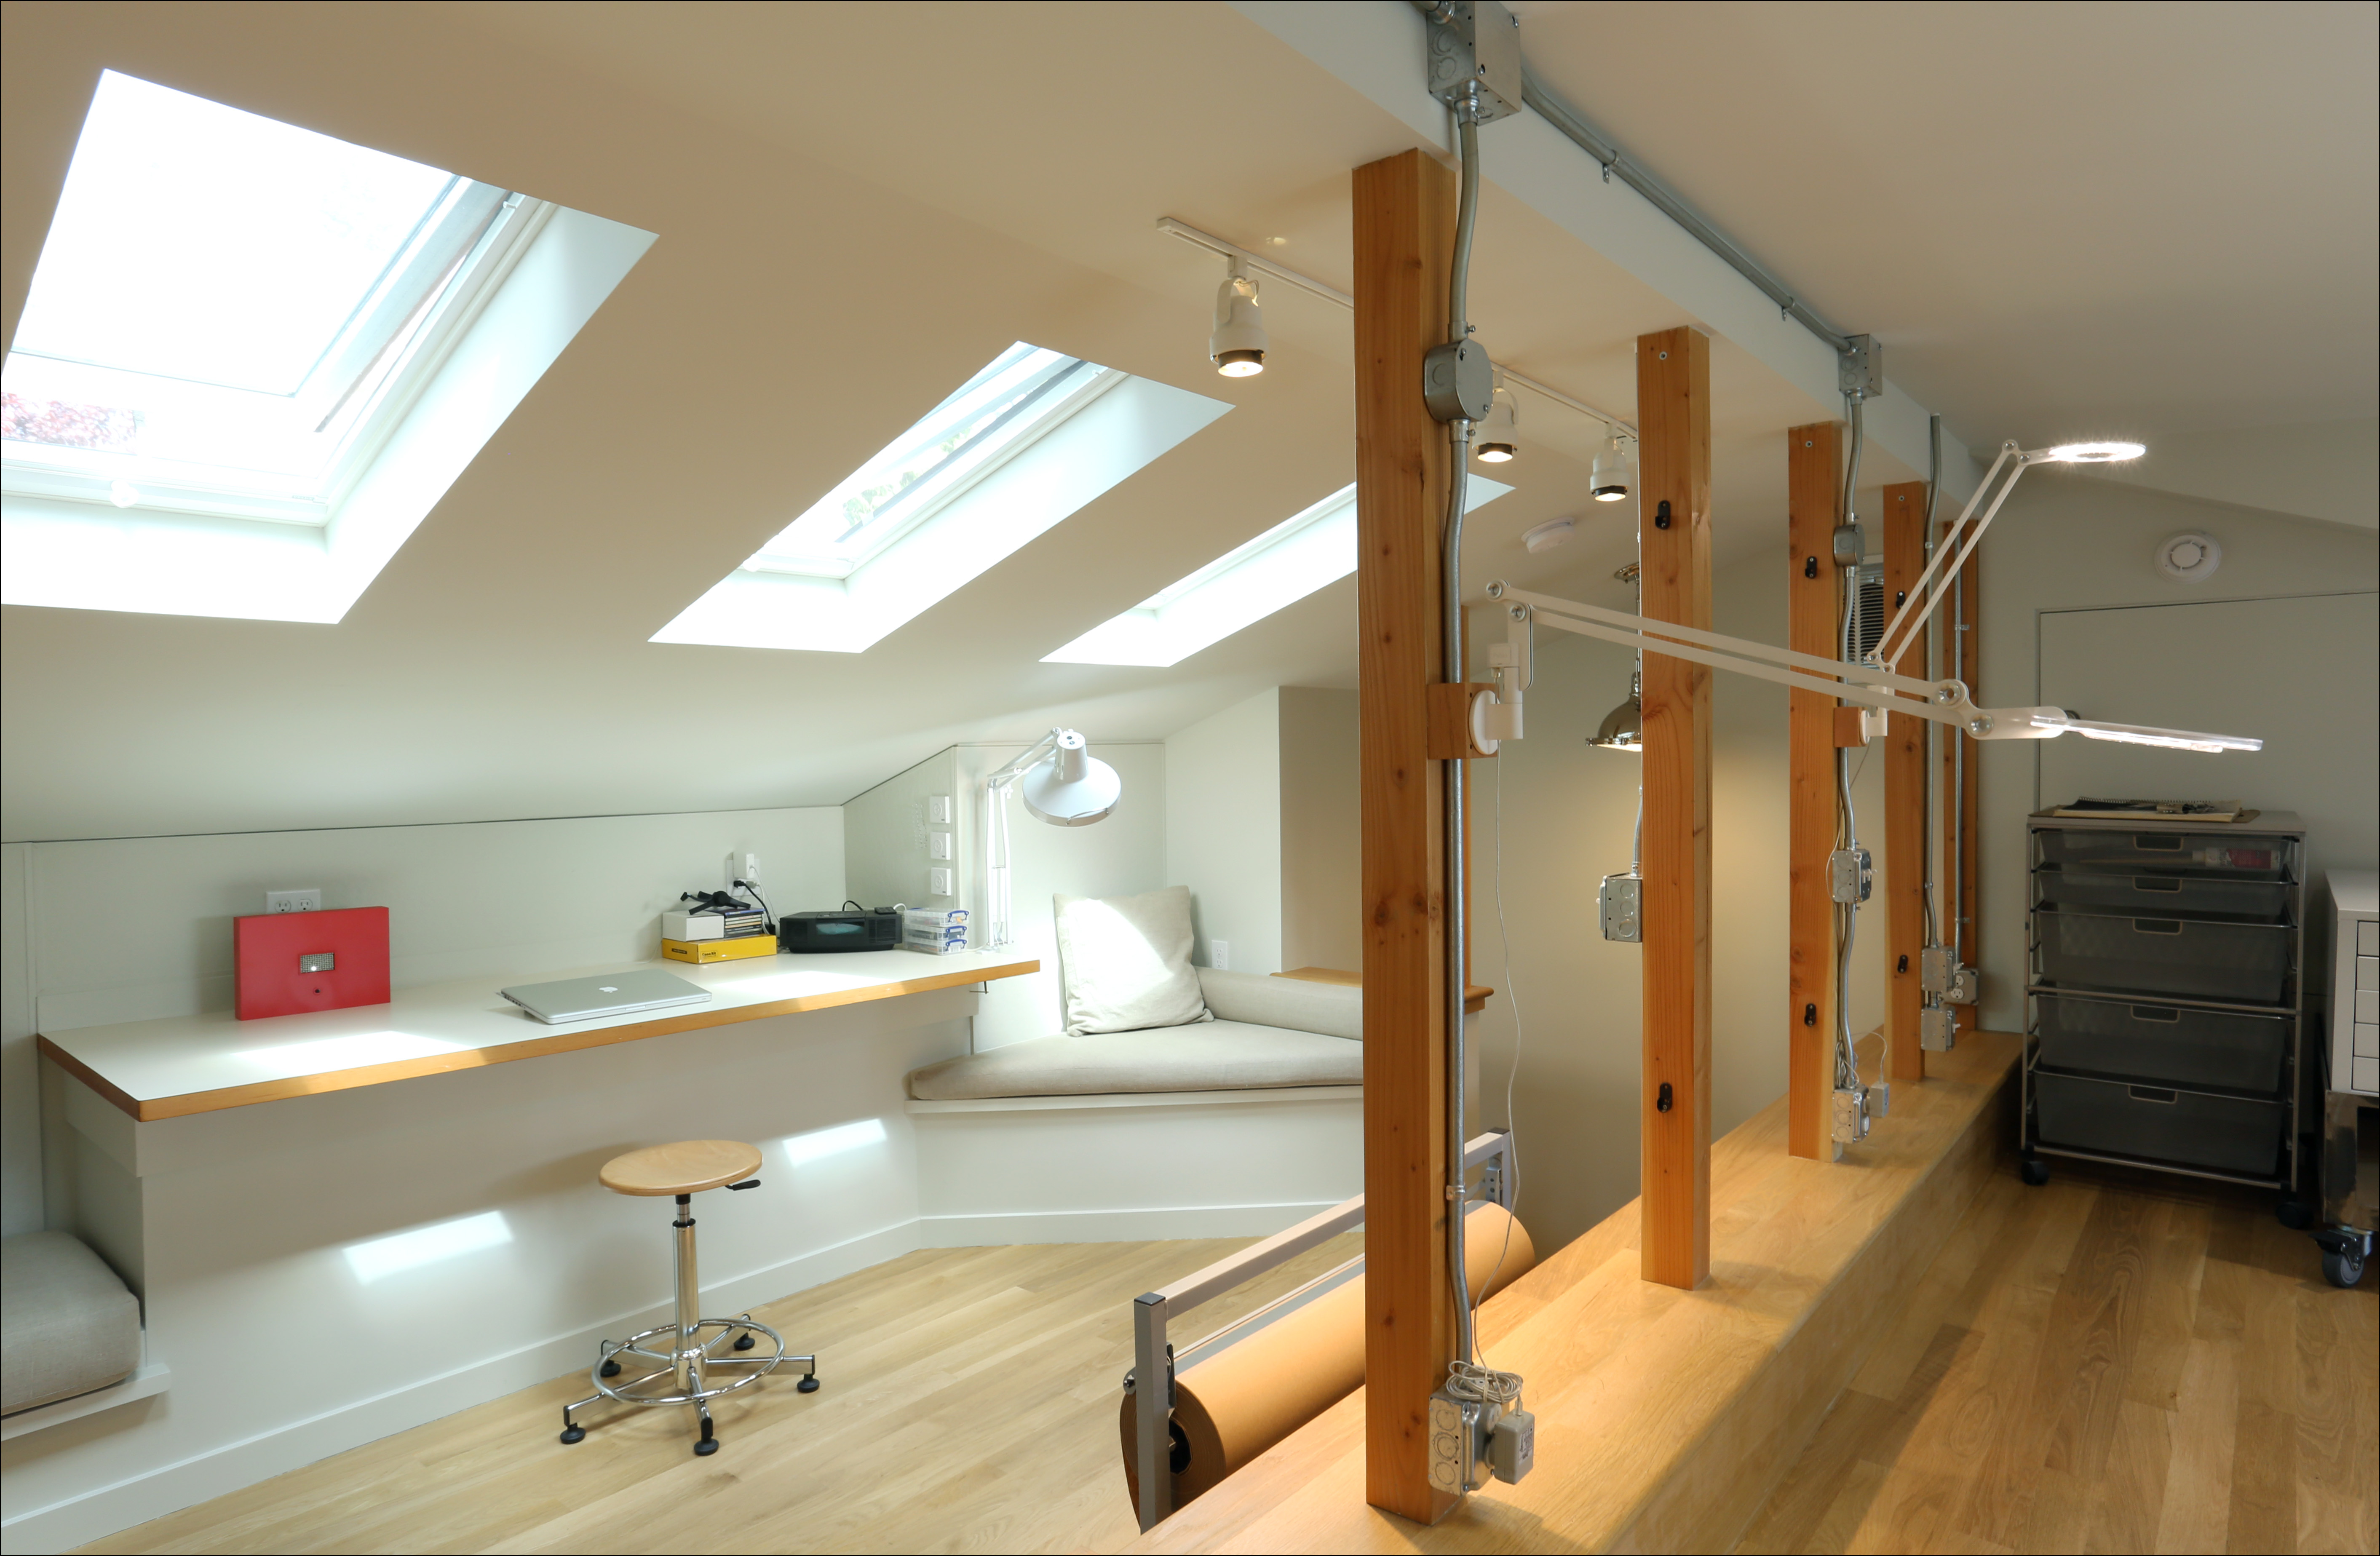 Client S Eye View Creating A Light And Airy Art Studio